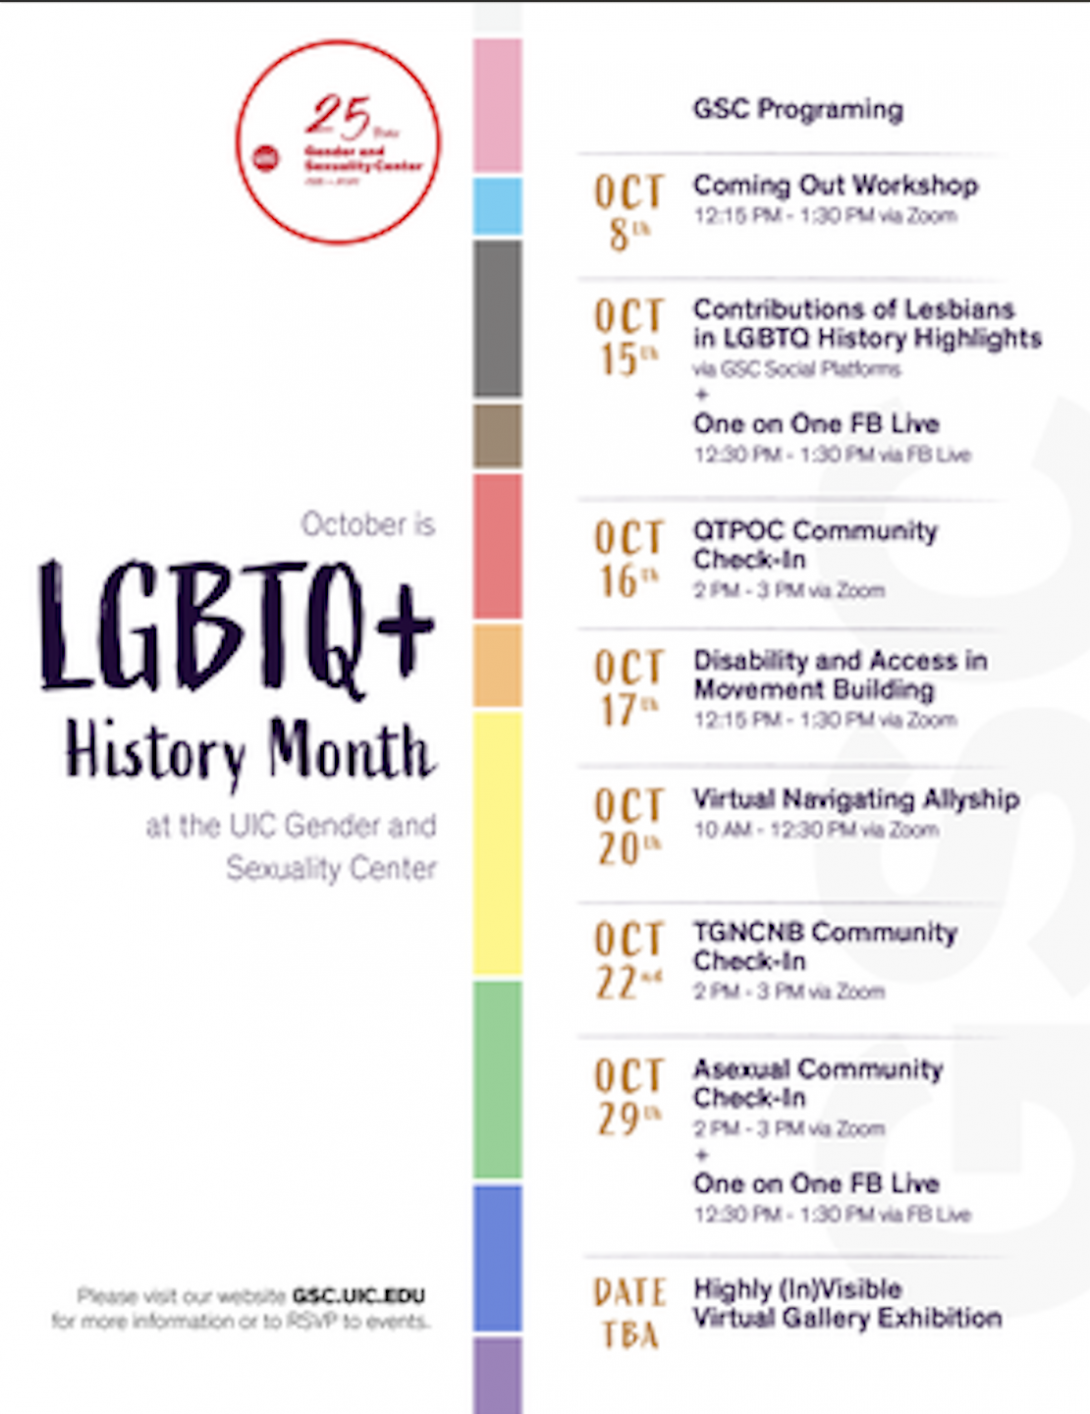 White background with a colorful, rainbow timeline featuring events the GSC will be hosting for this LGBTQ+ History Month